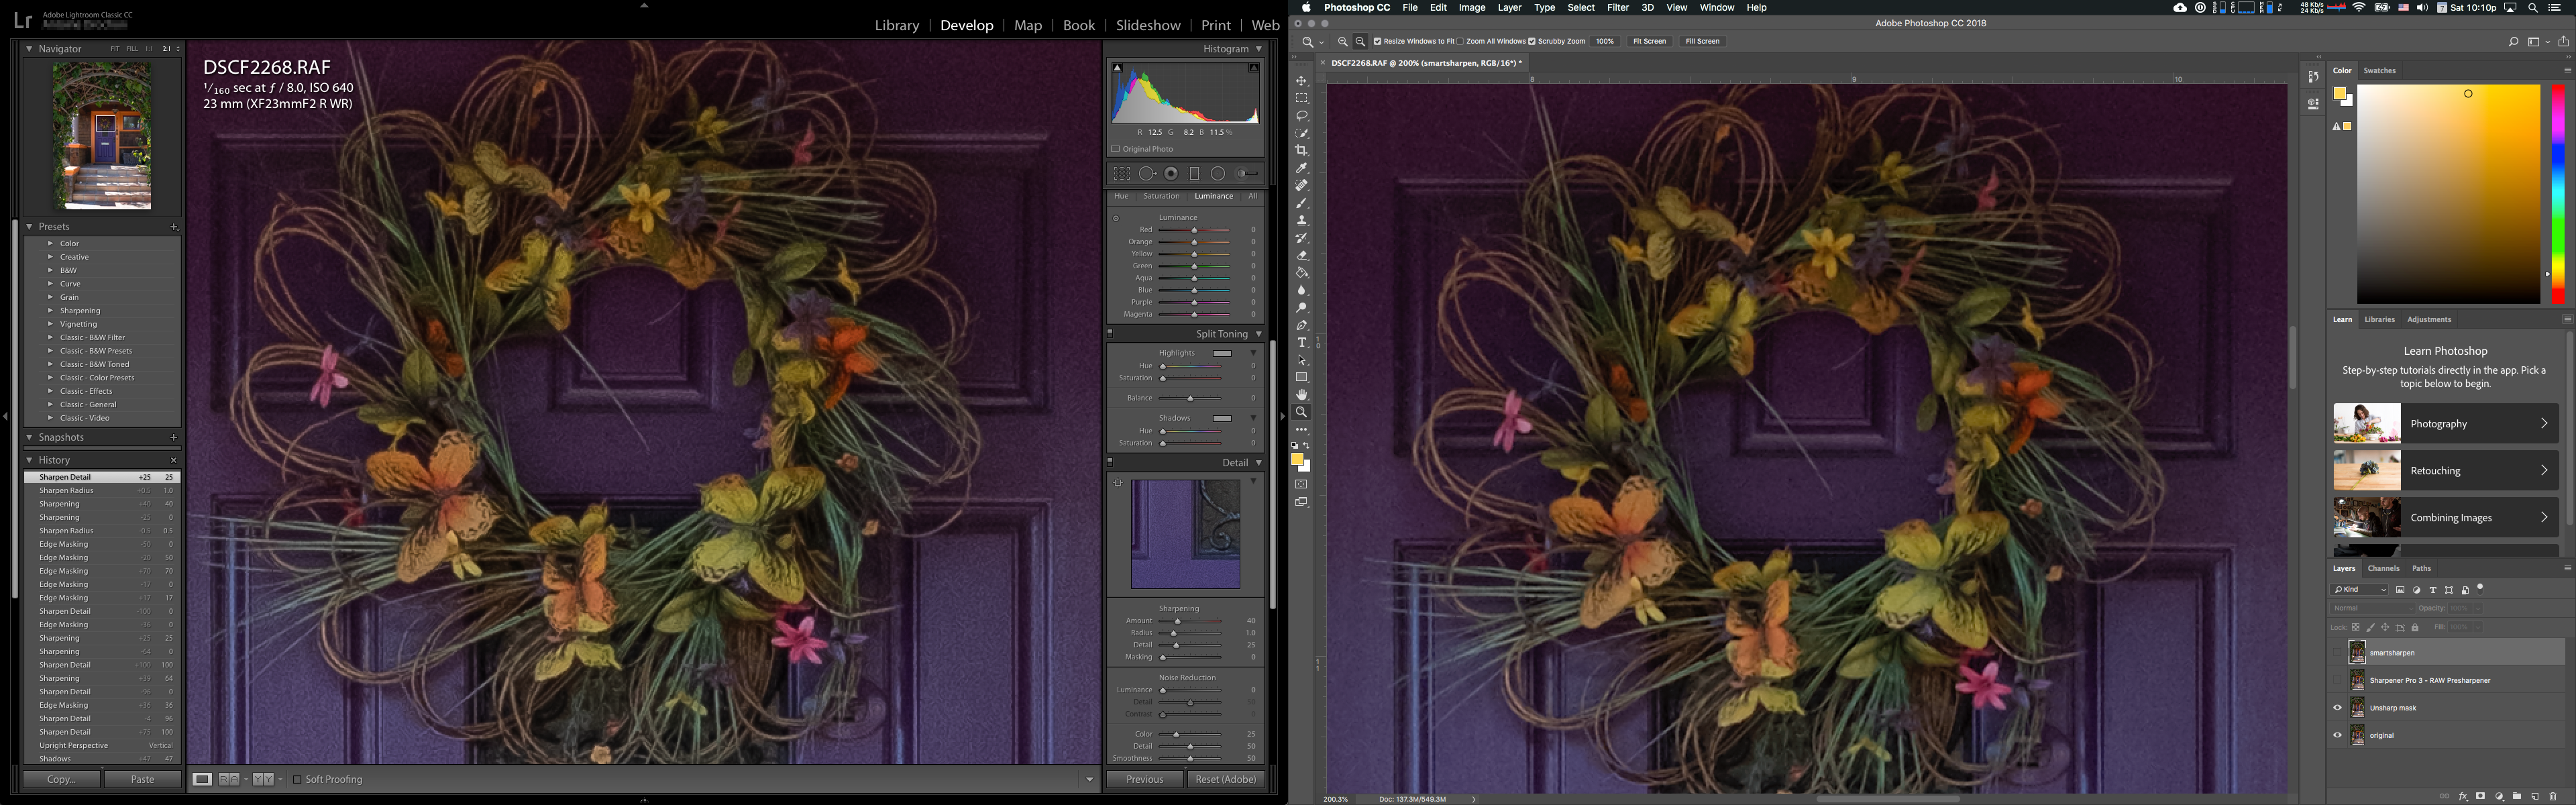 Lightroom 7 vs Photoshop RAF sharpening